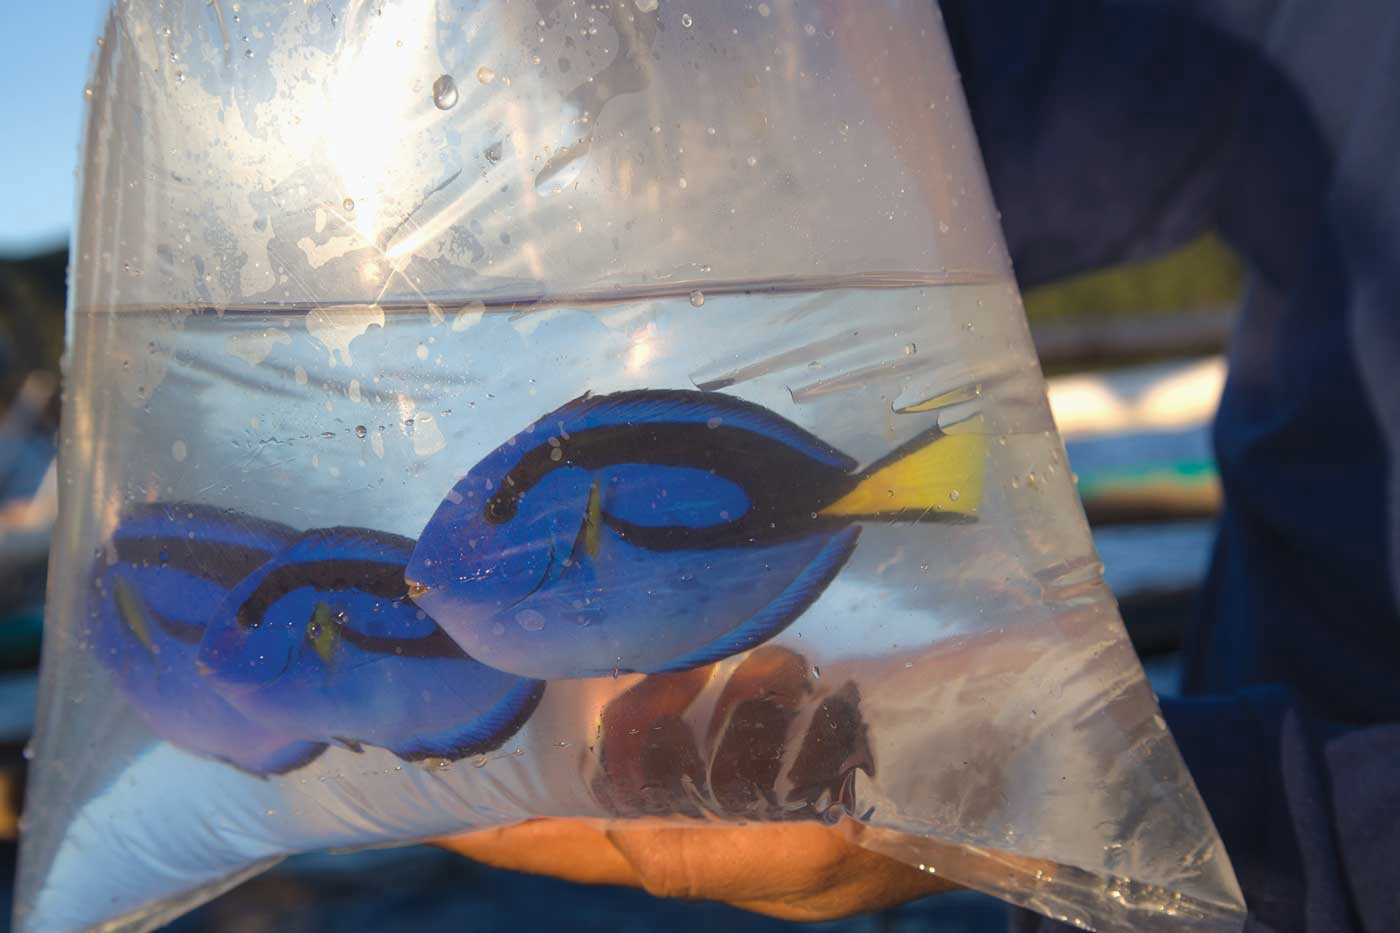 A bag of water containing three live blue tang. They are closely packed together.